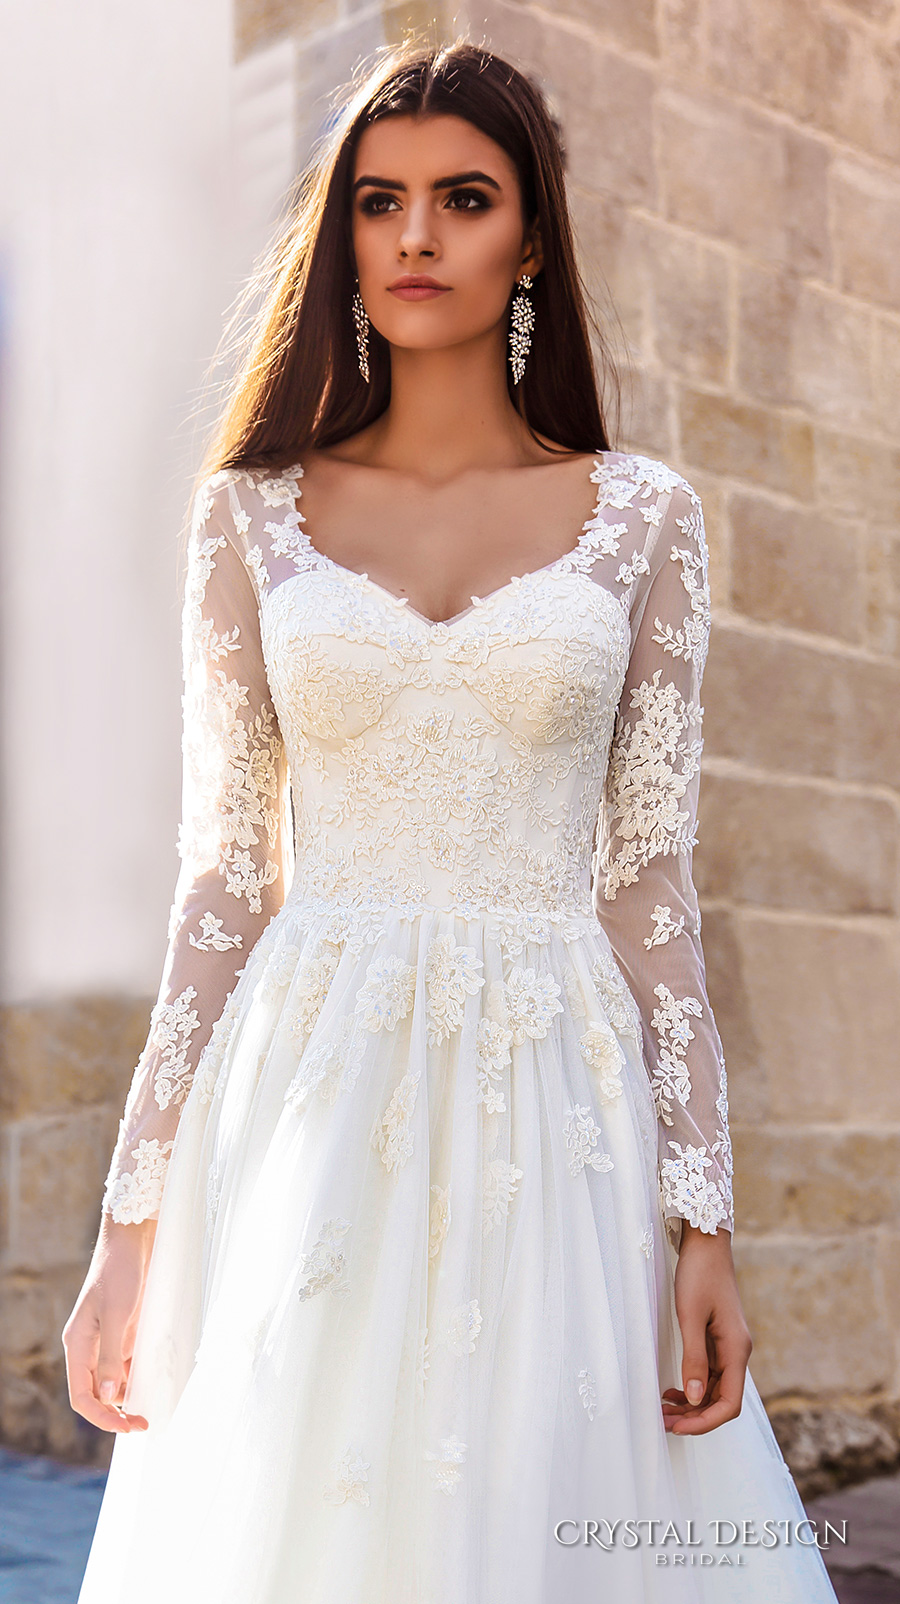 Crystal design 2016 wedding dresses wedding inspirasi for Elegant wedding dresses with long sleeves